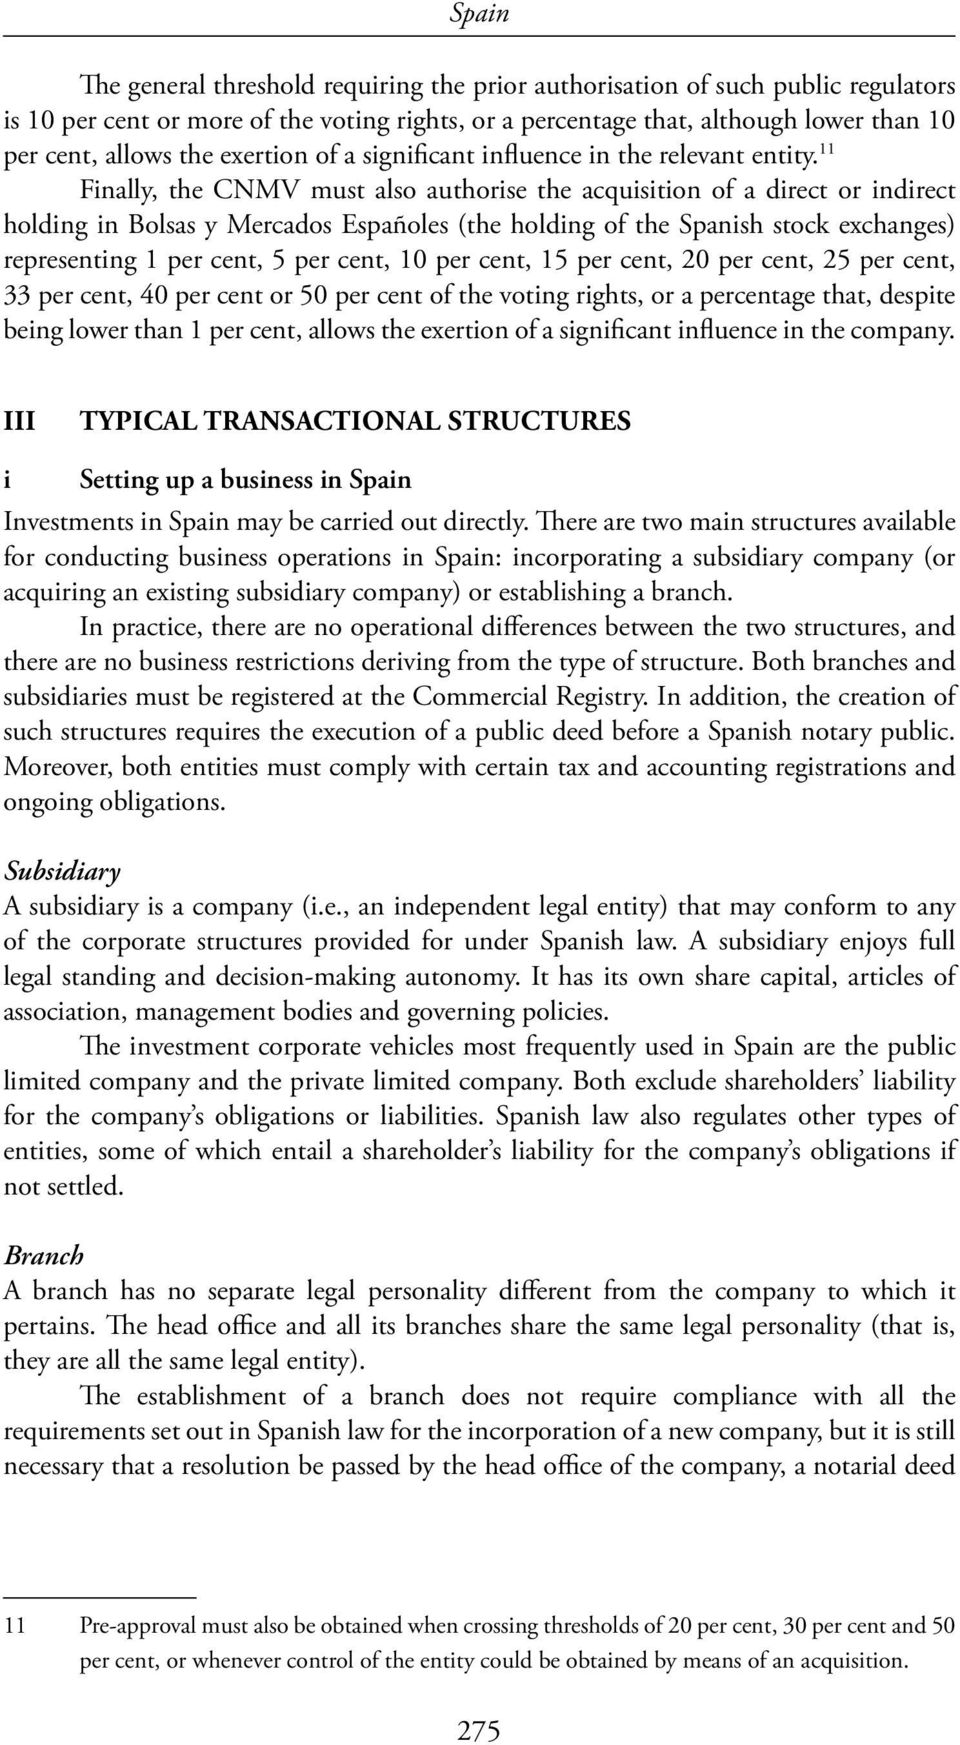 11 Finally, the CNMV must also authorise the acquisition of a direct or indirect holding in Bolsas y Mercados Españoles (the holding of the Spanish stock exchanges) representing 1 per cent, 5 per